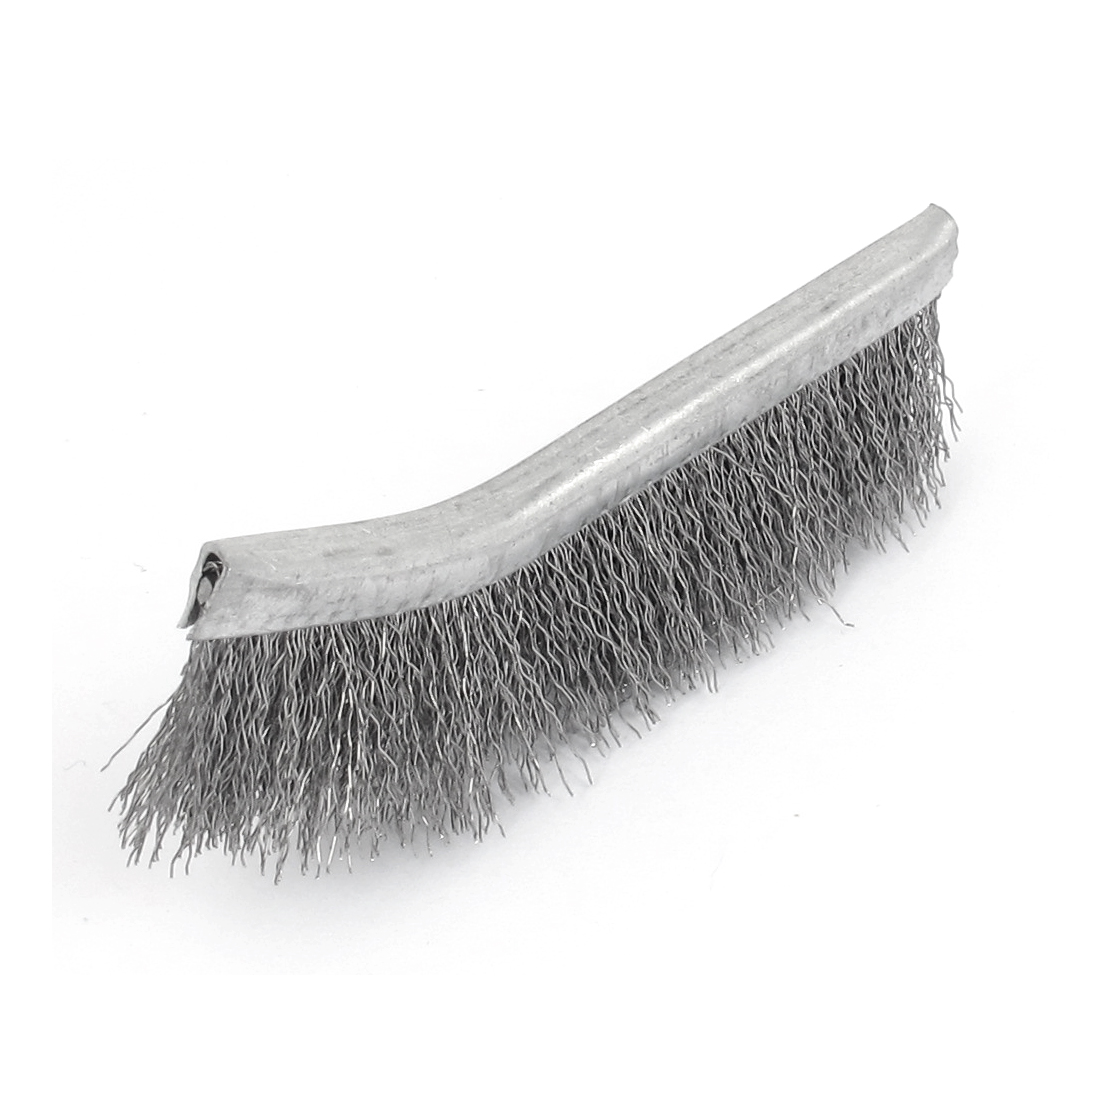 Handy Tool 8.5cm Length Metal Bent Head Steel Wire Cleaning Brush Silver Tone